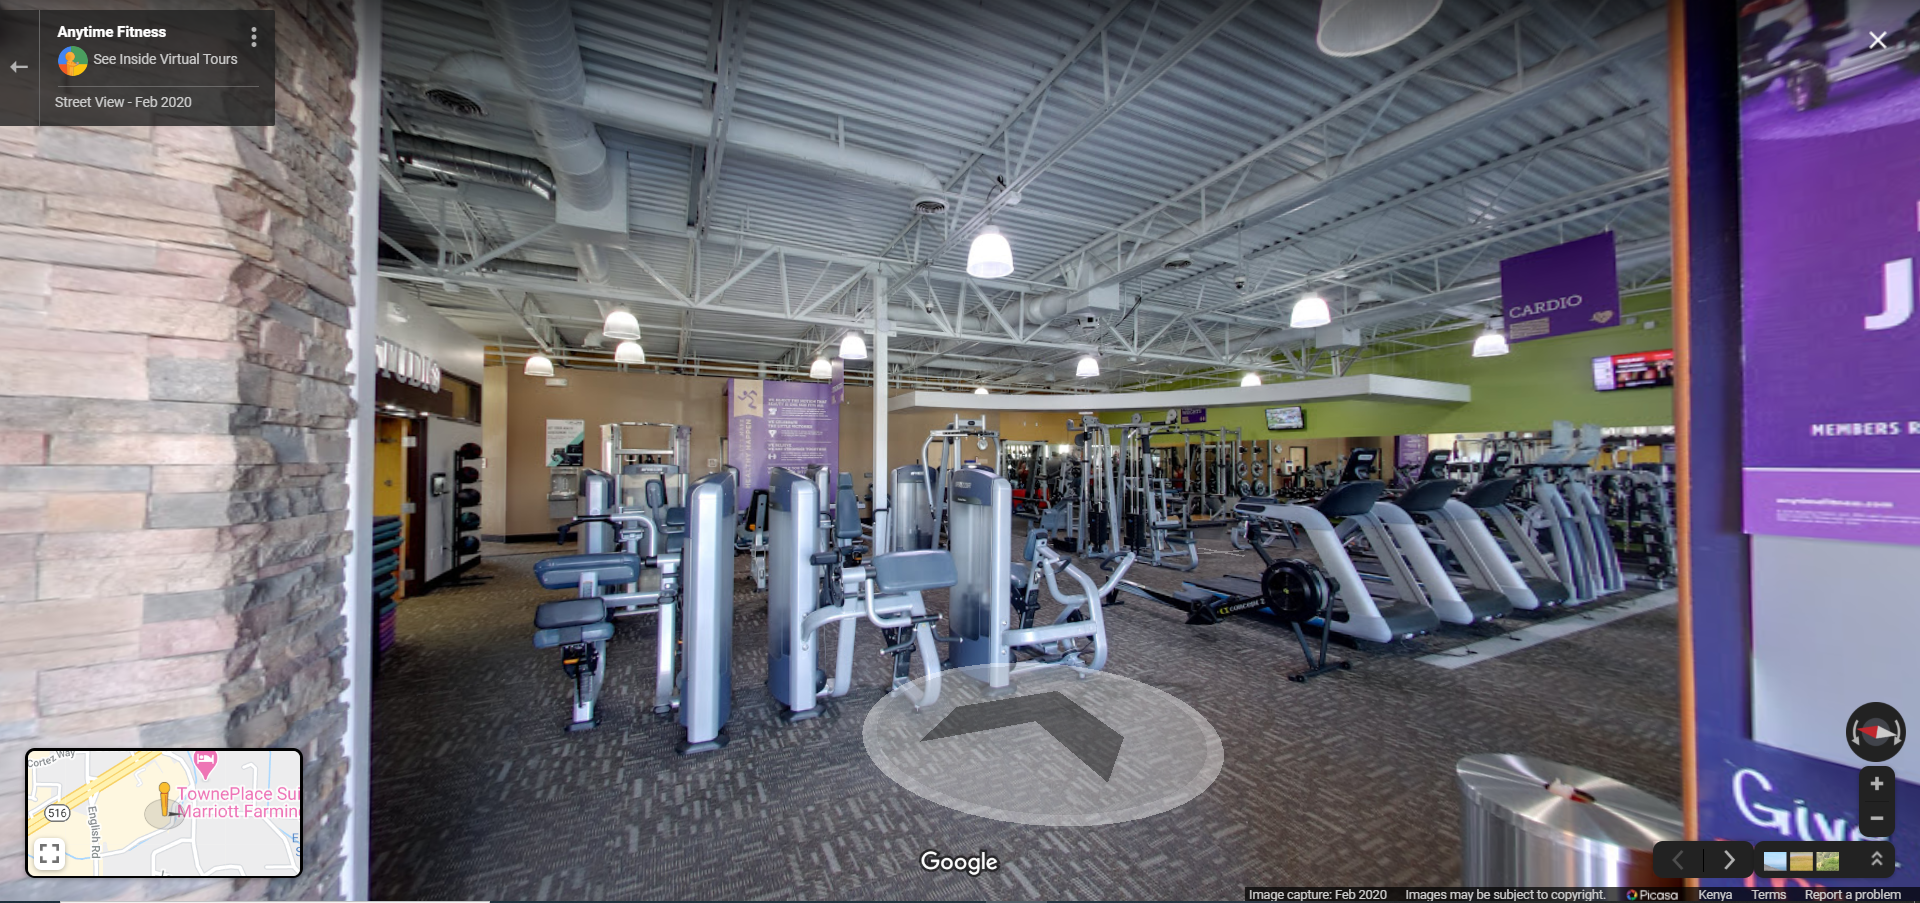 Anytime Fitness - E. Main St., Farmington